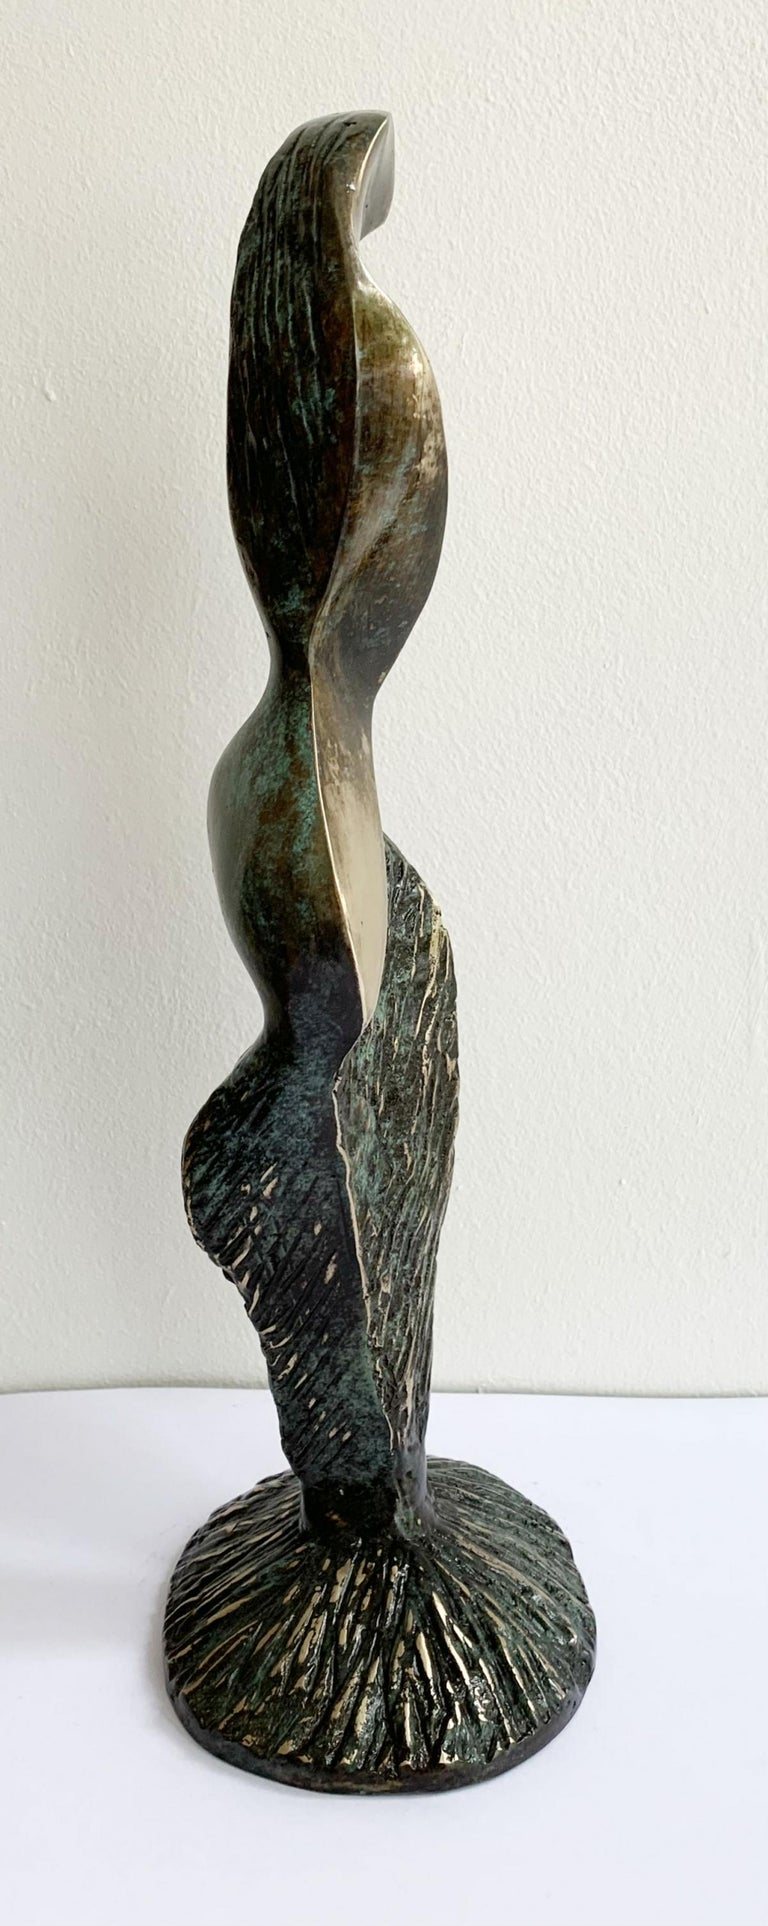 Dame VIII - XXI century Contemporary bronze sculpture, Abstract & figurative - Gold Abstract Sculpture by Stanisław Wysocki